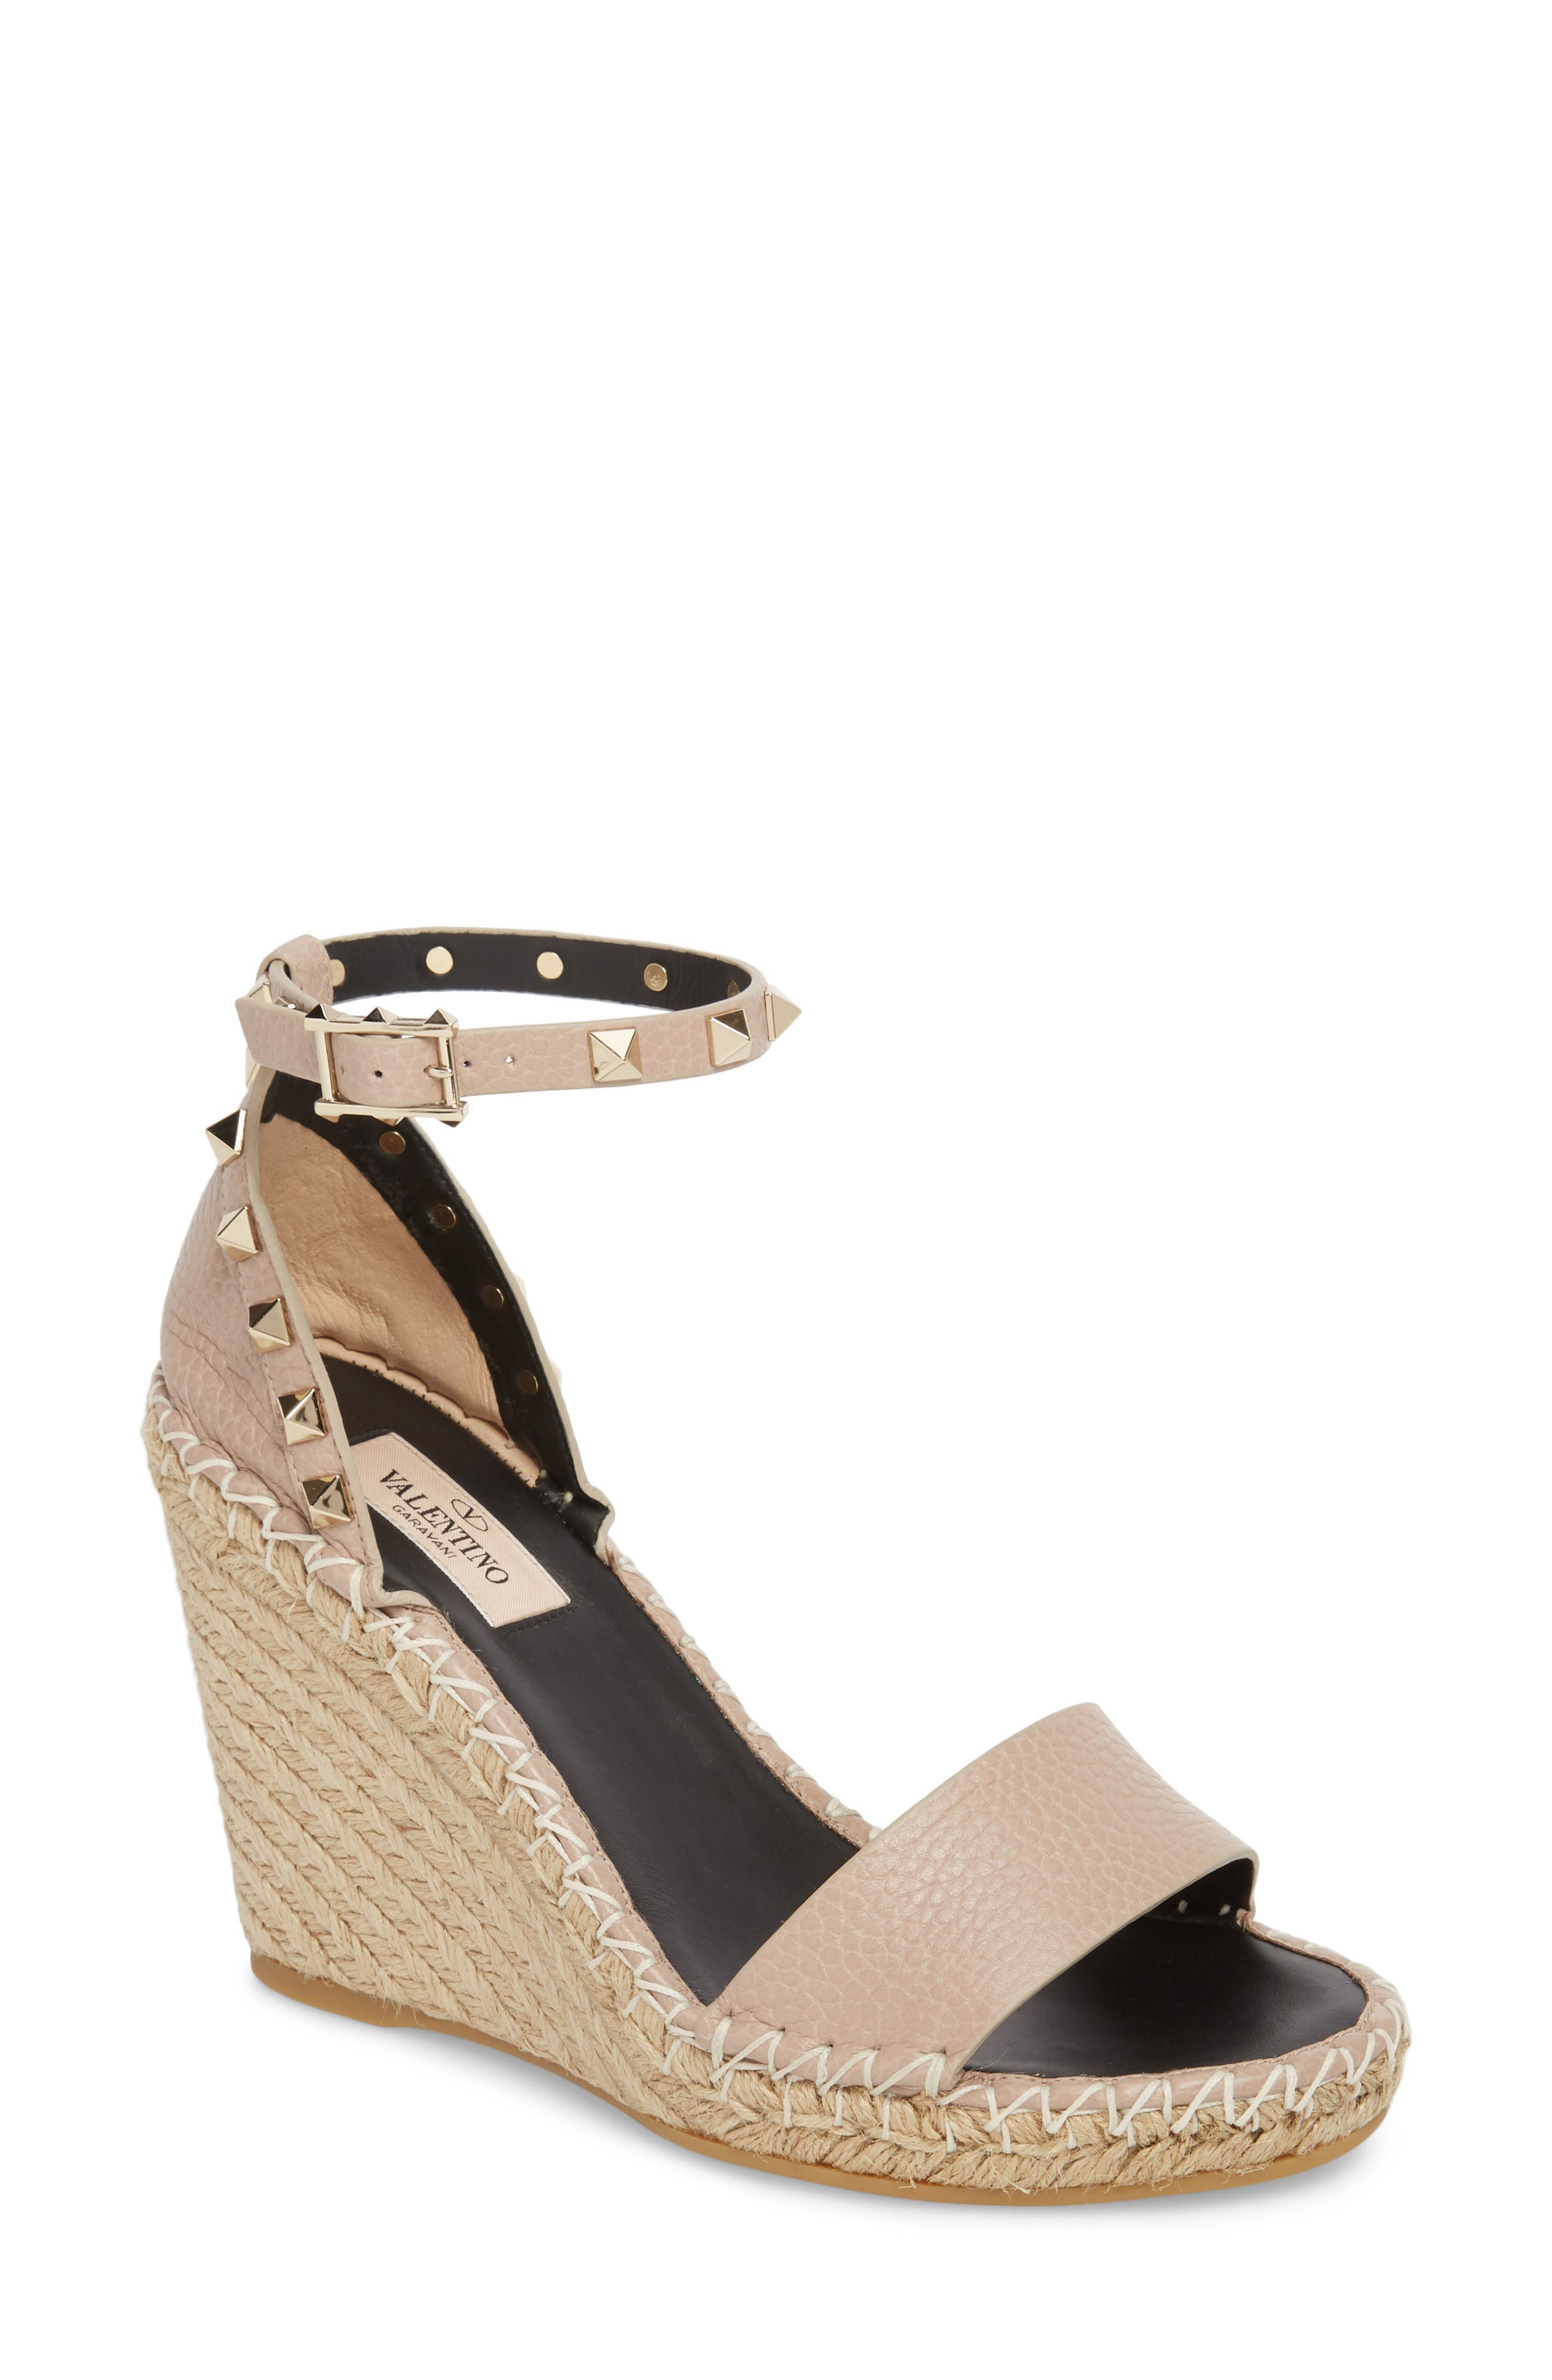 Rockstud Double Espadrille Wedge Sandals in Poudre